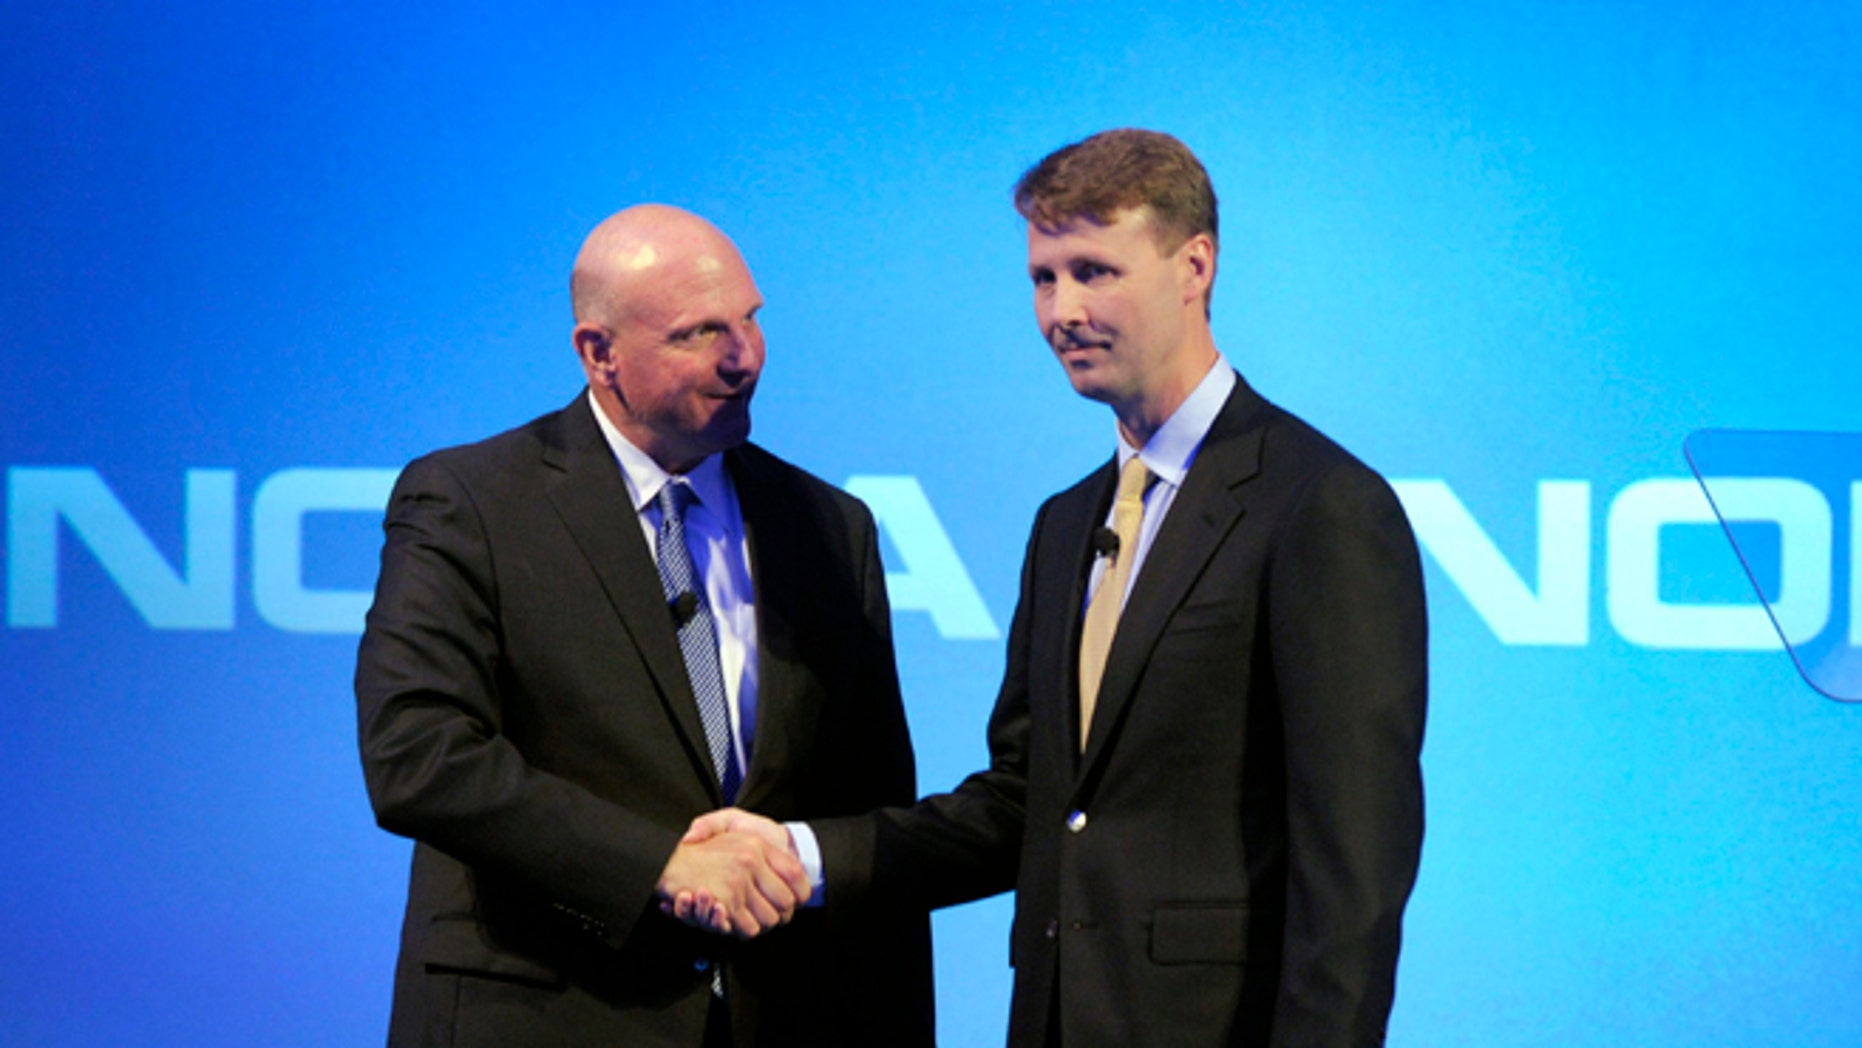 Microsoft CEO Steve Ballmer shakes hands with Nokia's Chairman of the Board Risto Siilasmaa (R) during the news conference of Finnish mobile phone manufacturer Nokia in Espoo, September 3, 2013.